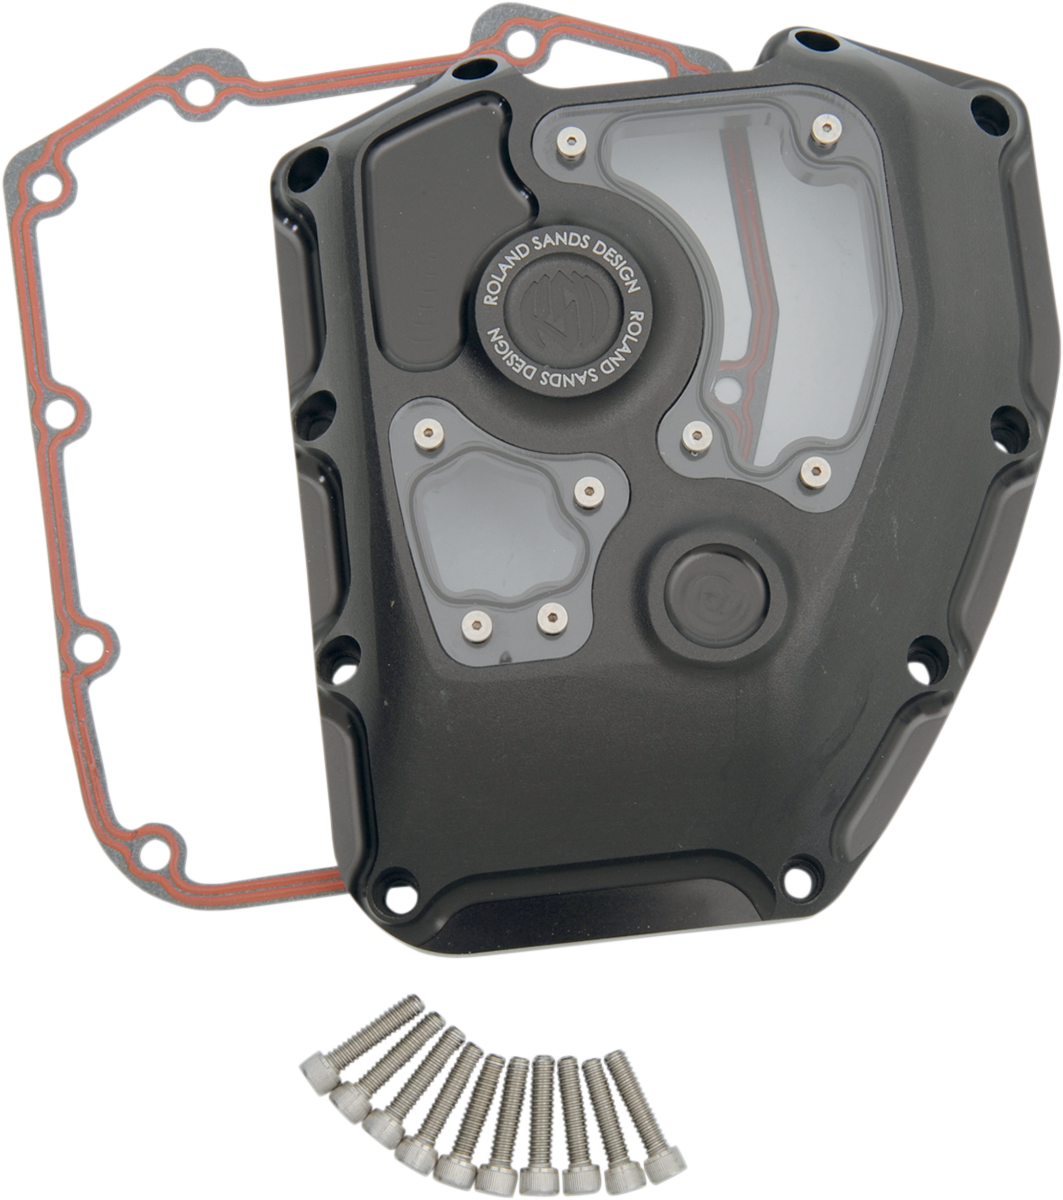 RSD Black Ops Clarity Transmission Cam Cover for 02-16 Harley Touring FLTRX FLHX